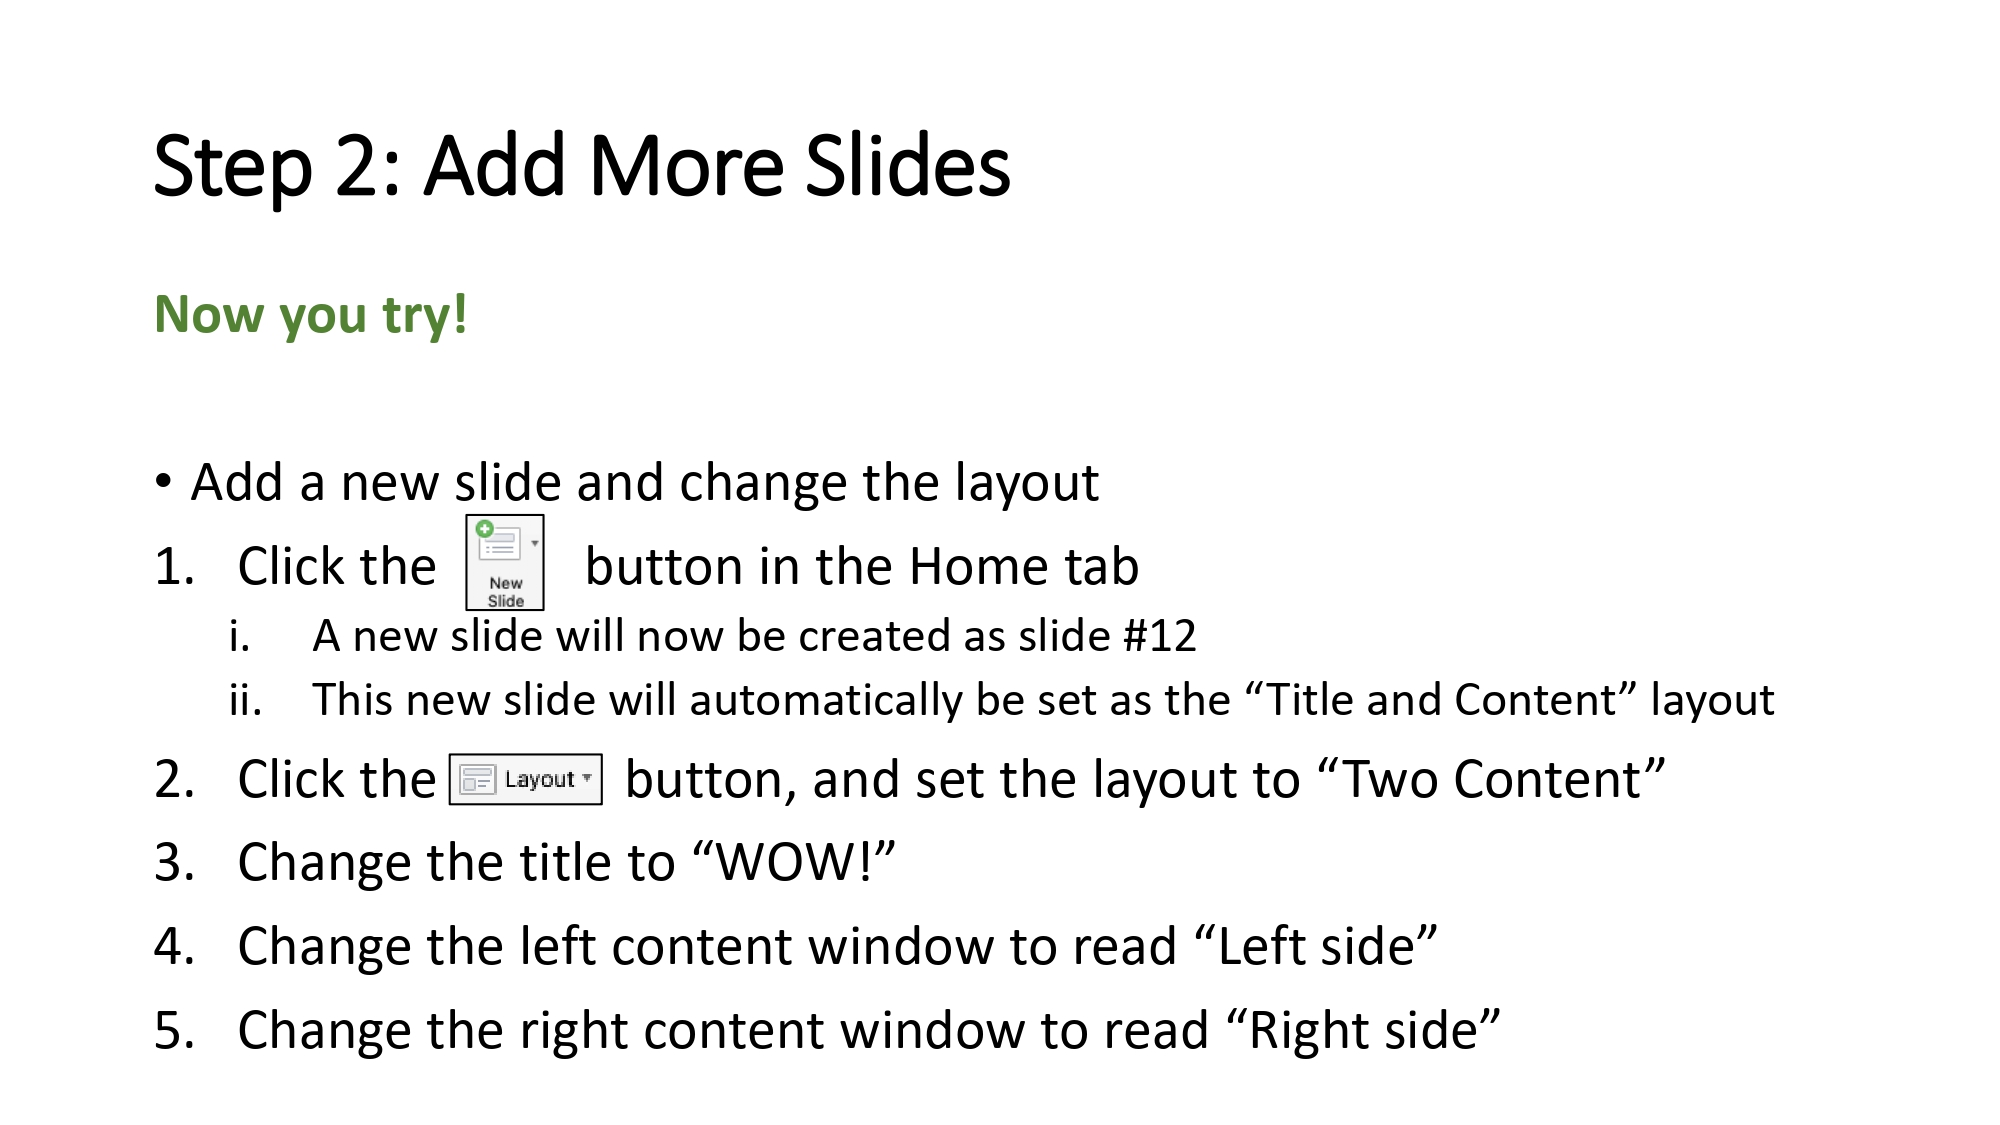 Guide to Creating a Simple PowerPoint_compressed (1)_page-0011